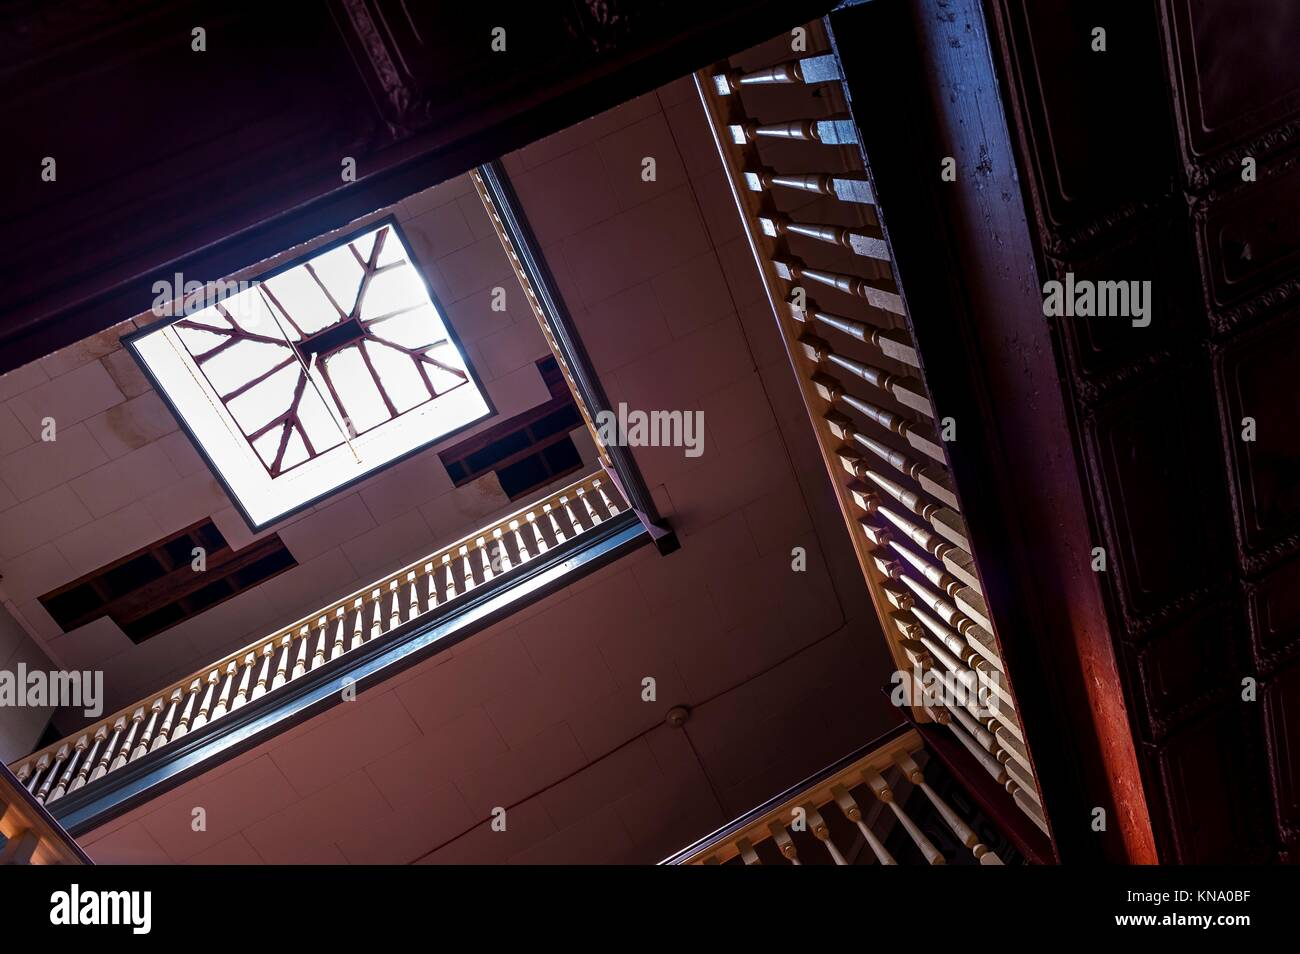 Building Wrap Stock Photos & Building Wrap Stock Images - Alamy